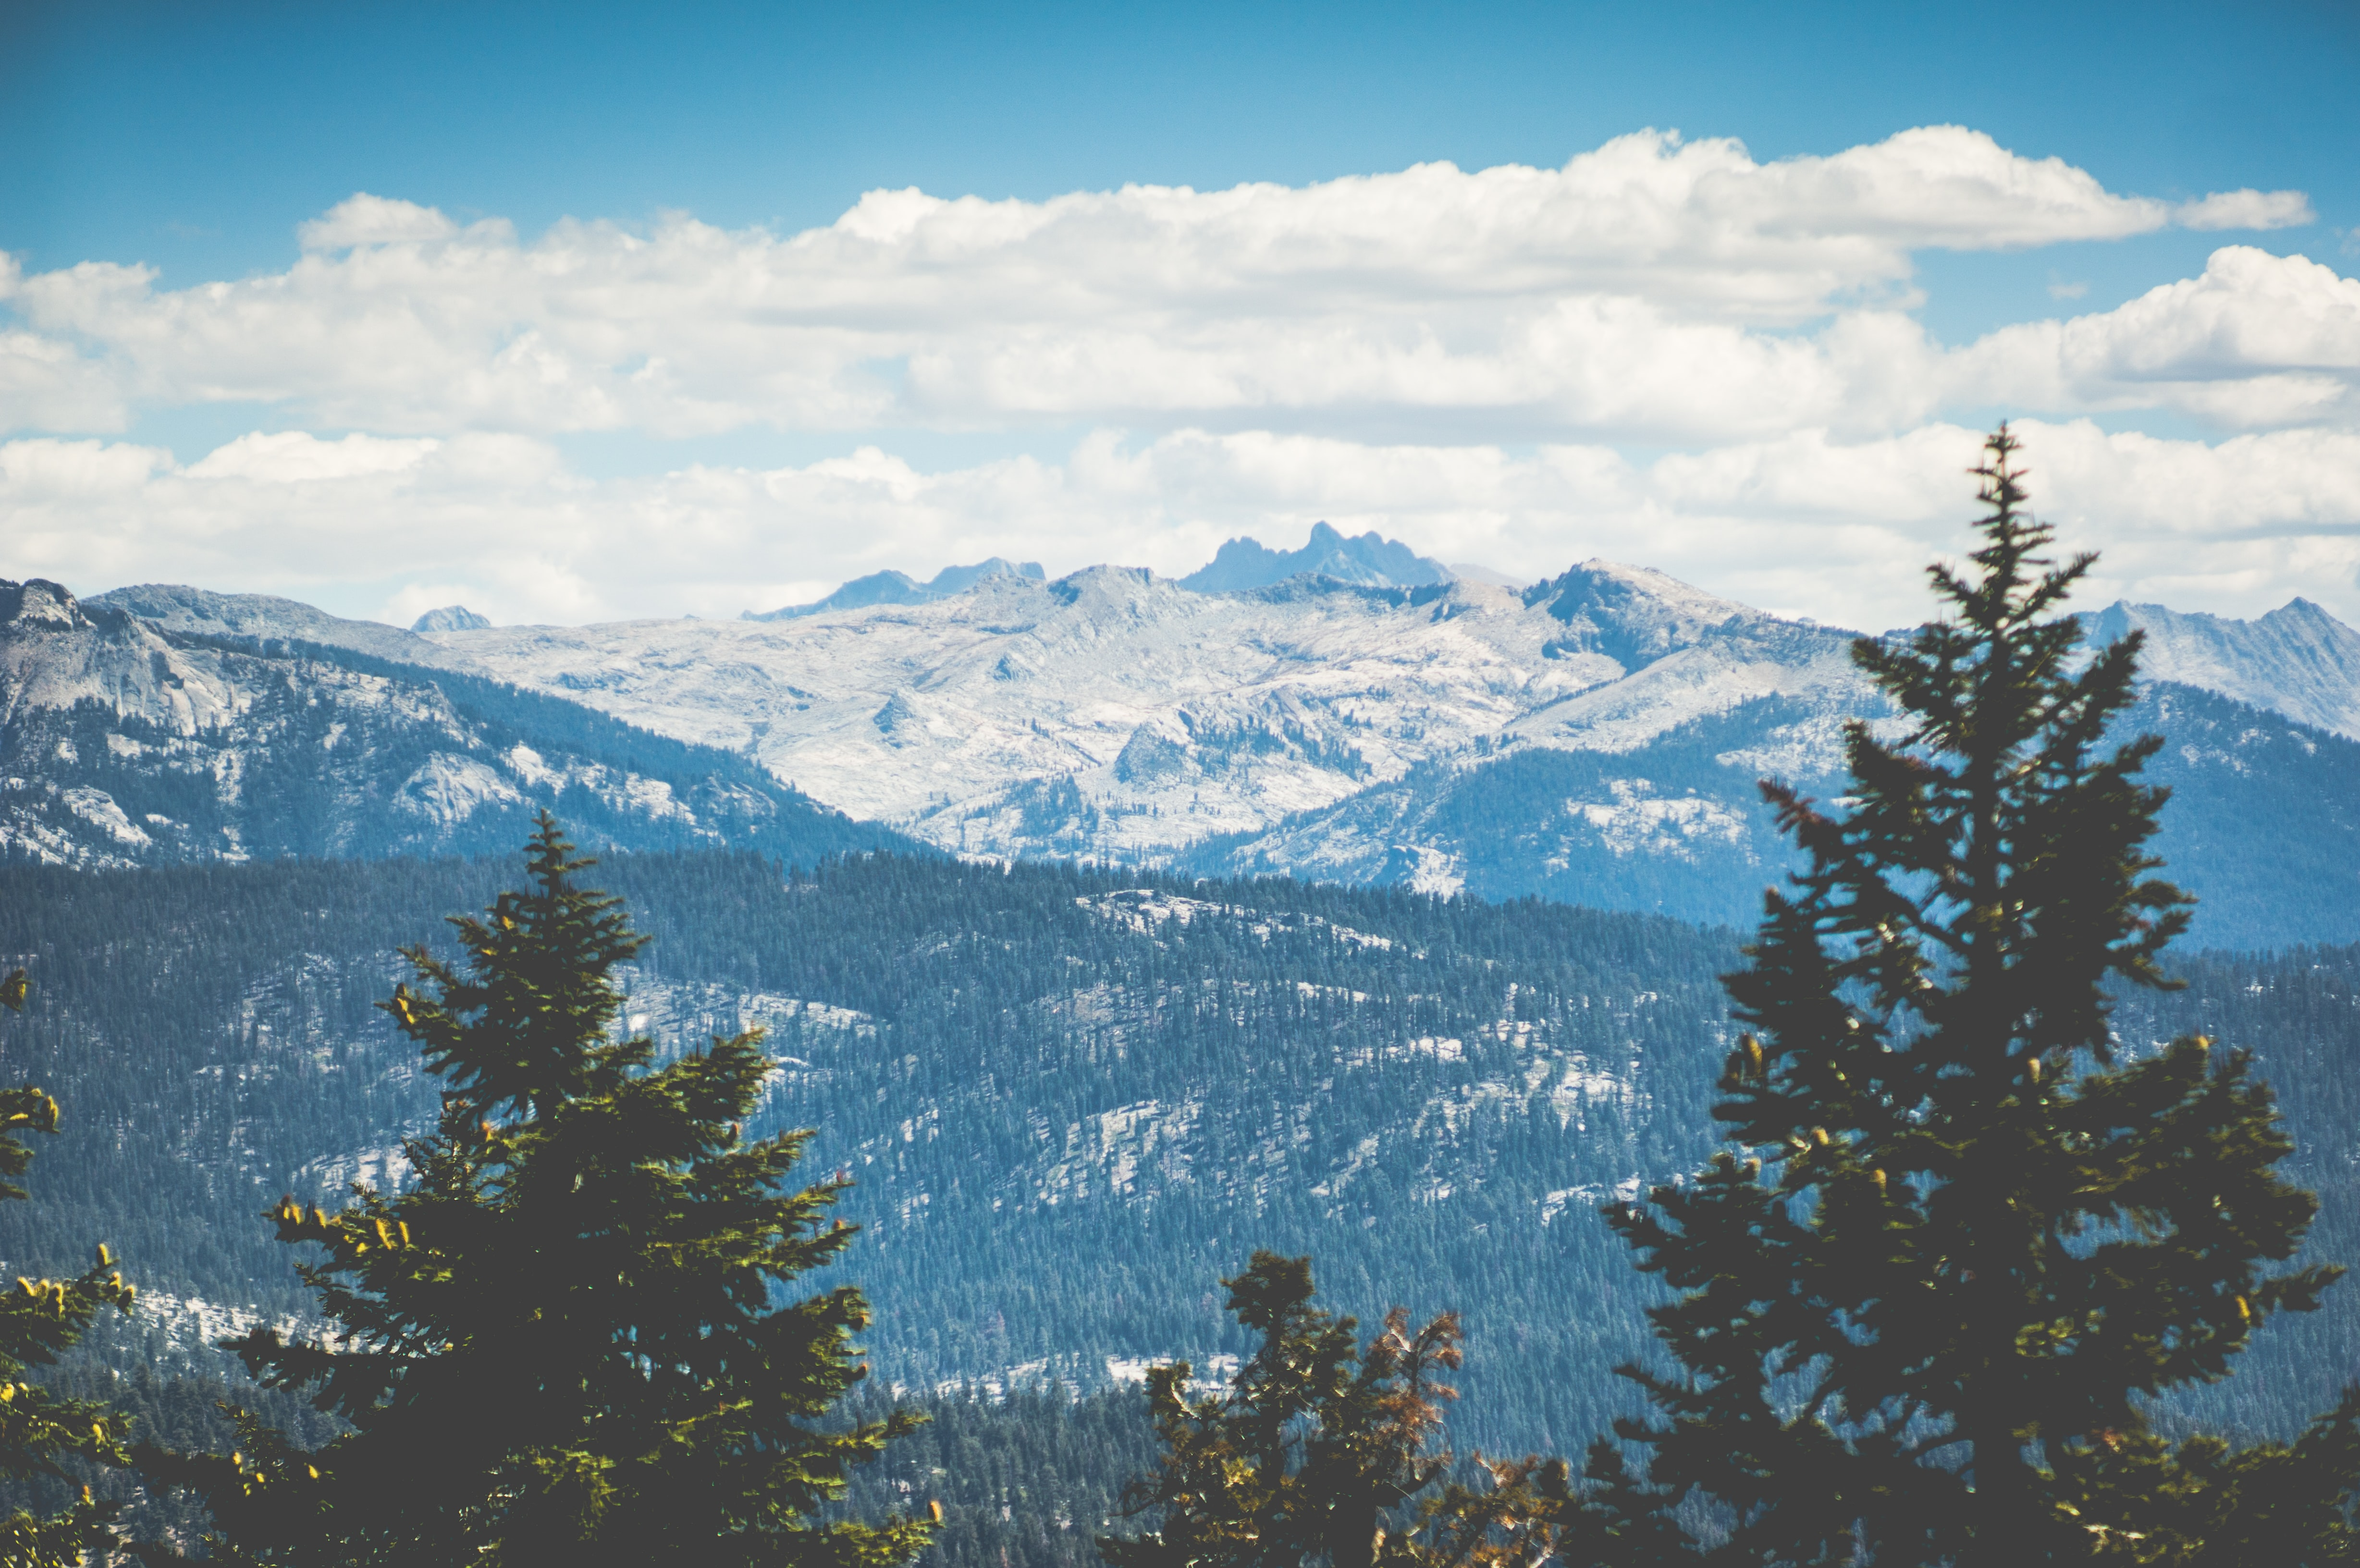 Evergreen forests and snowy mountain tops fill into the horizon at Sequoia National Park on a bright day